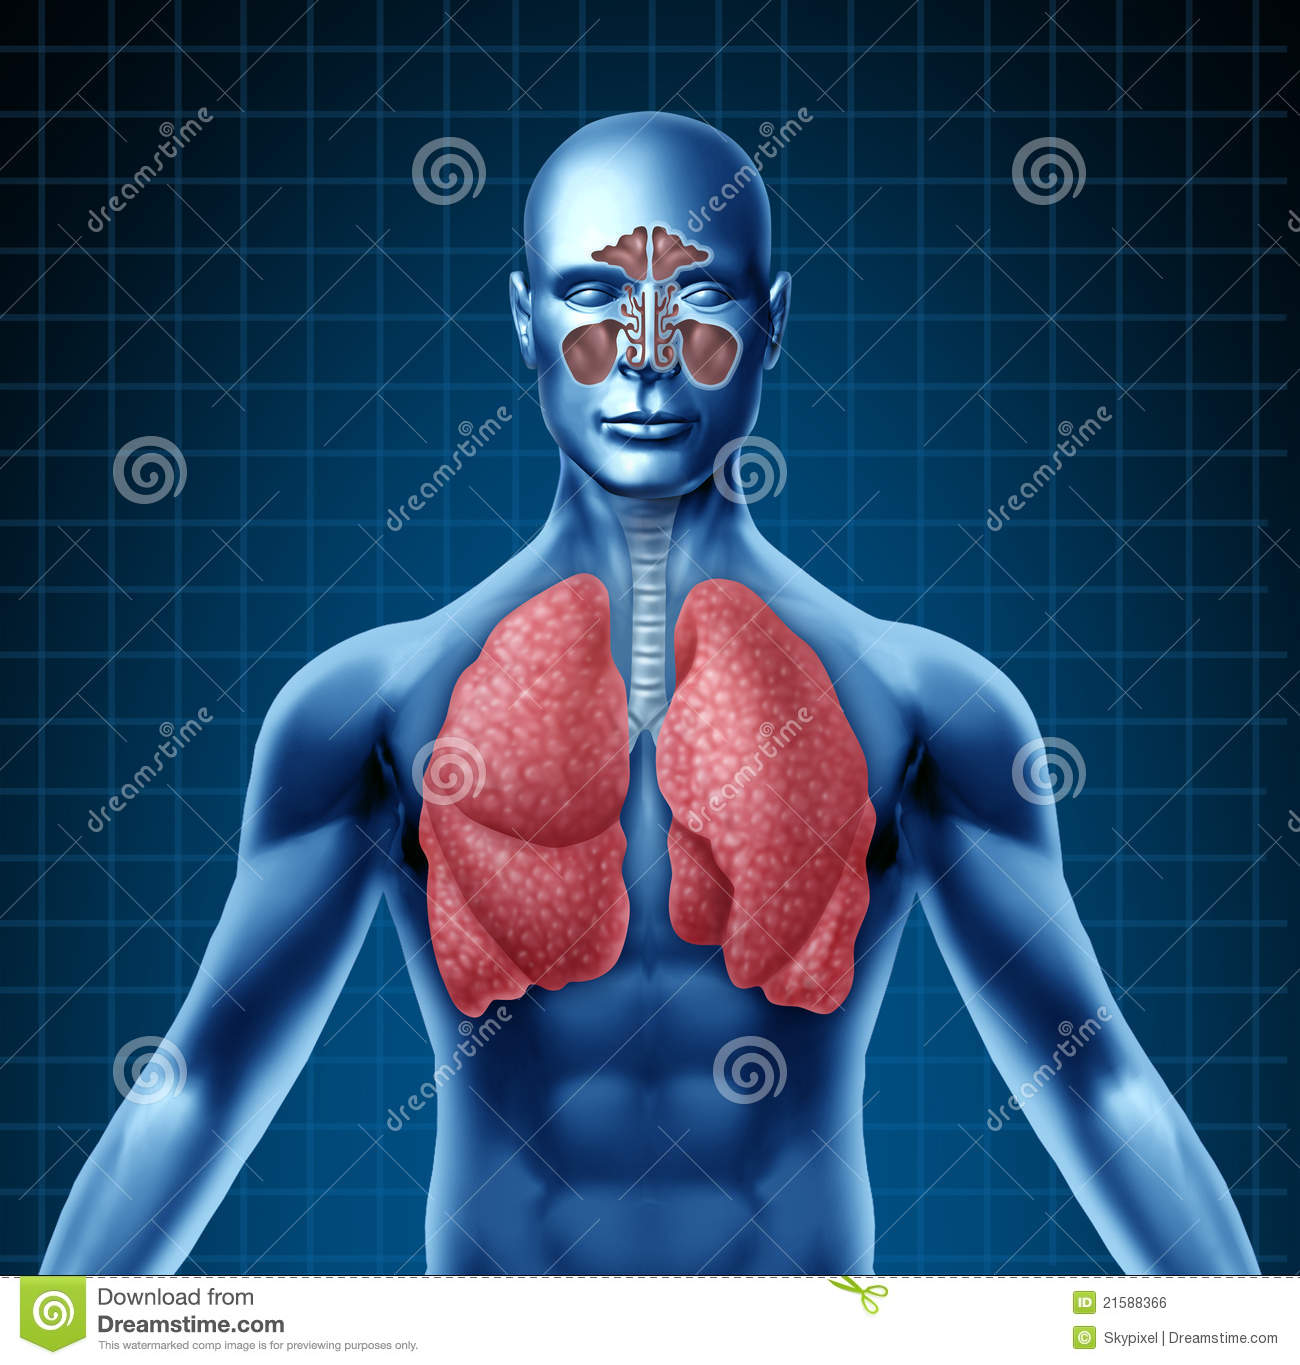 Human sinus and respiratory system